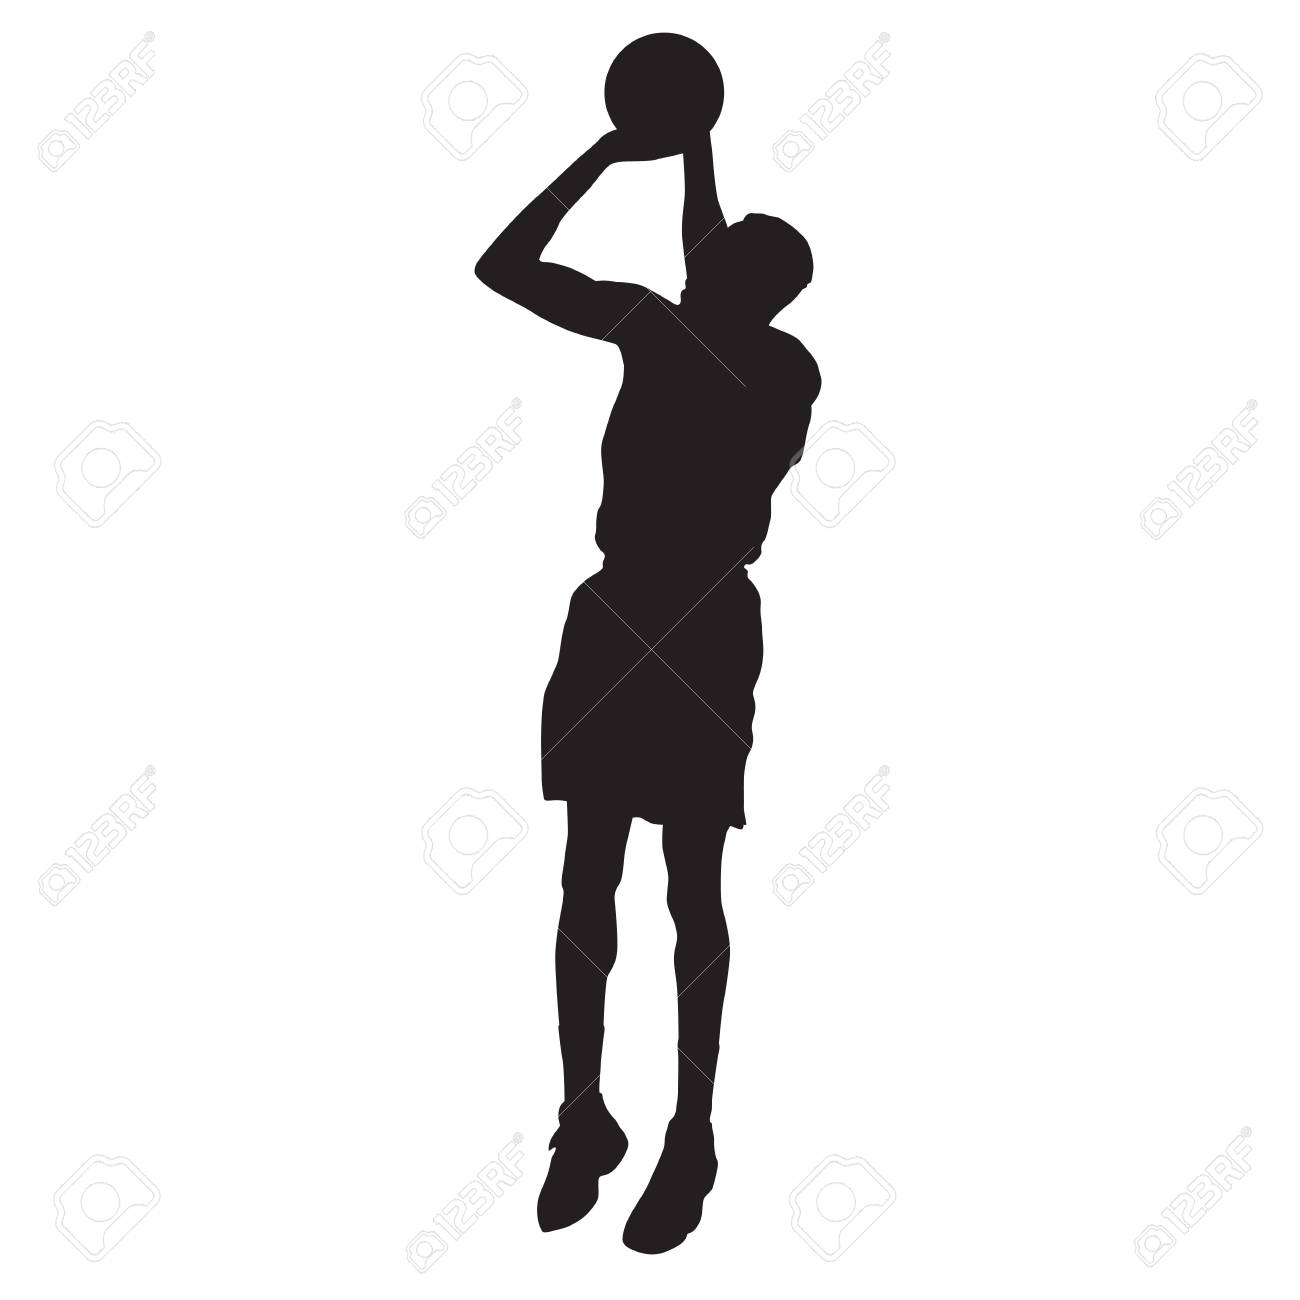 Basketball player jumping and shooting. Vector silhouette.